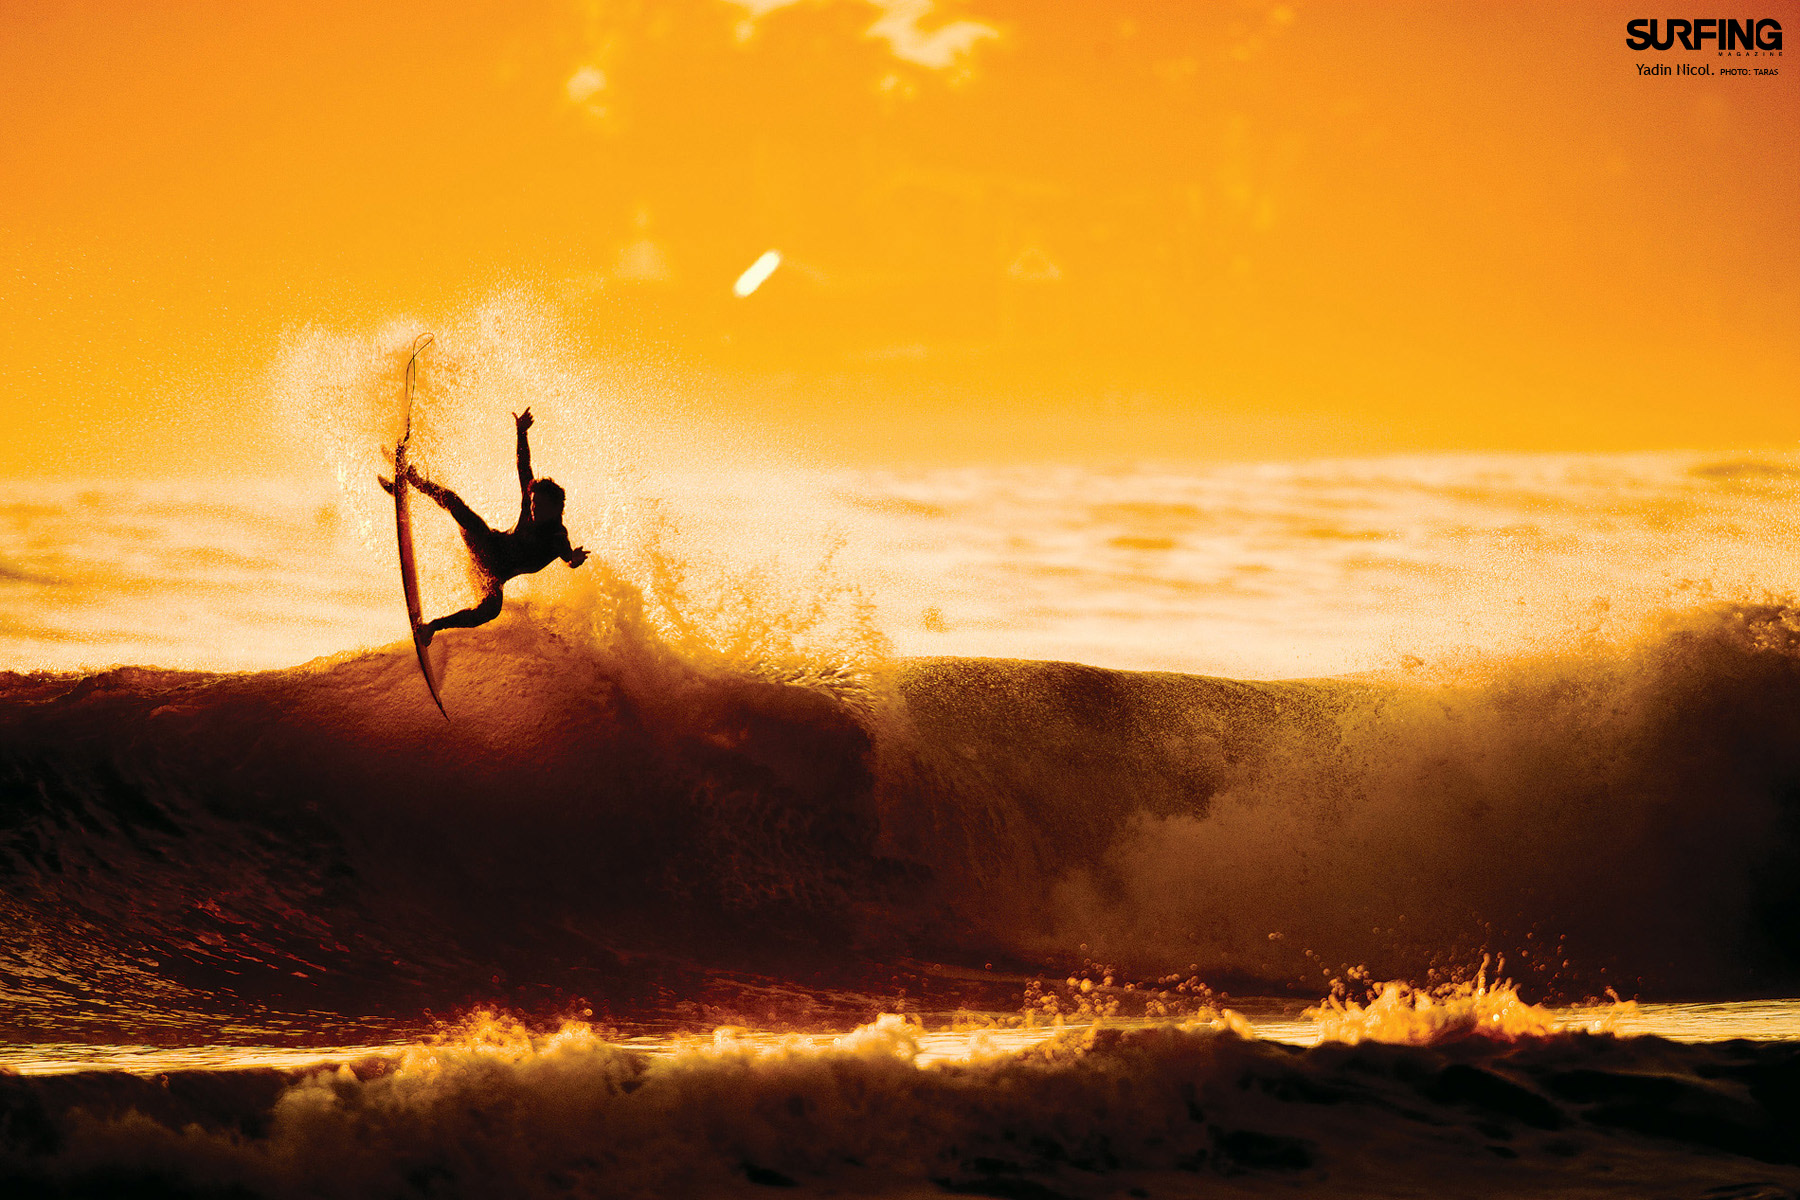 surfing Computer Wallpapers Desktop Backgrounds 1800x1200 ID 1800x1200